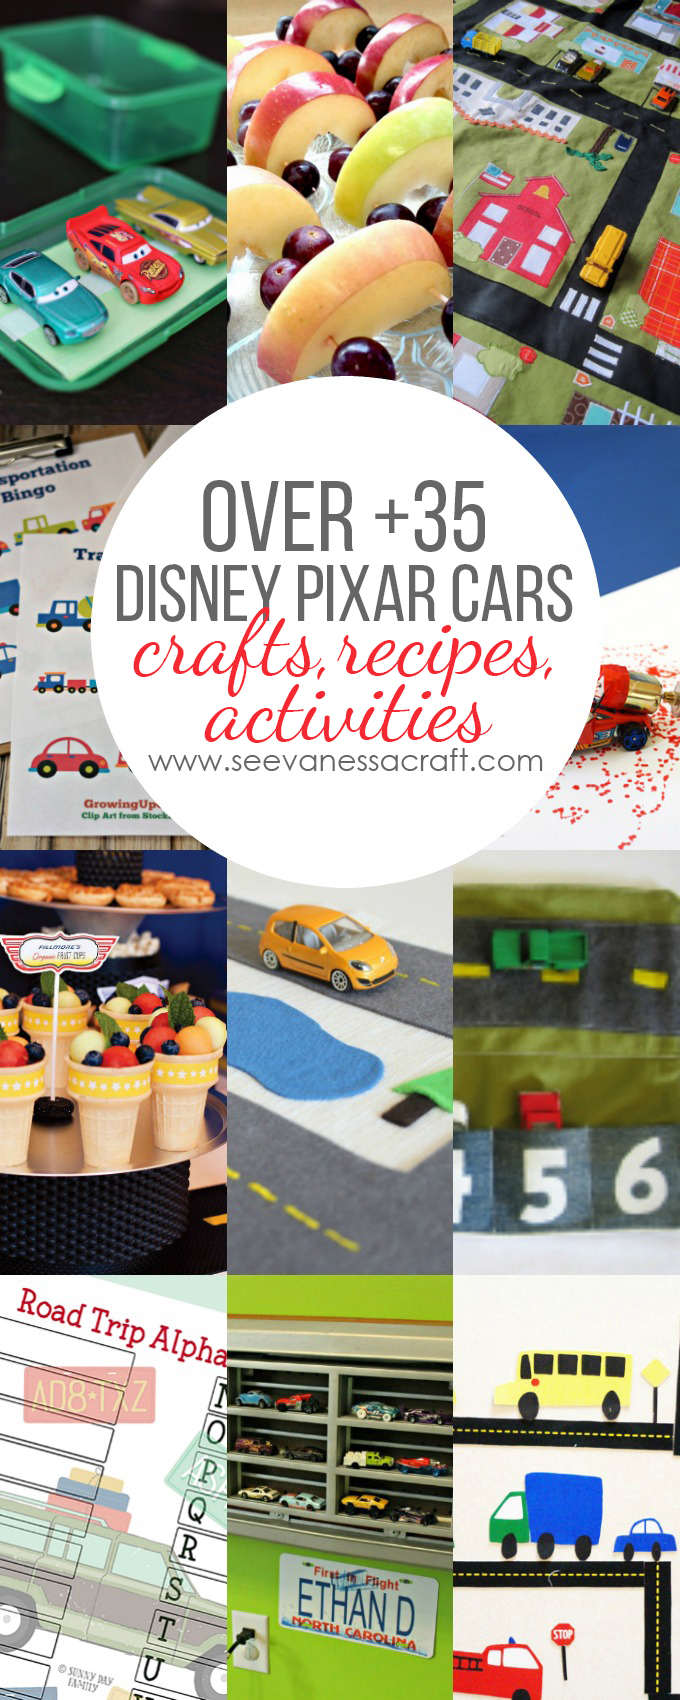 Disney Pixar Cars Crafts Recipes Activities copy